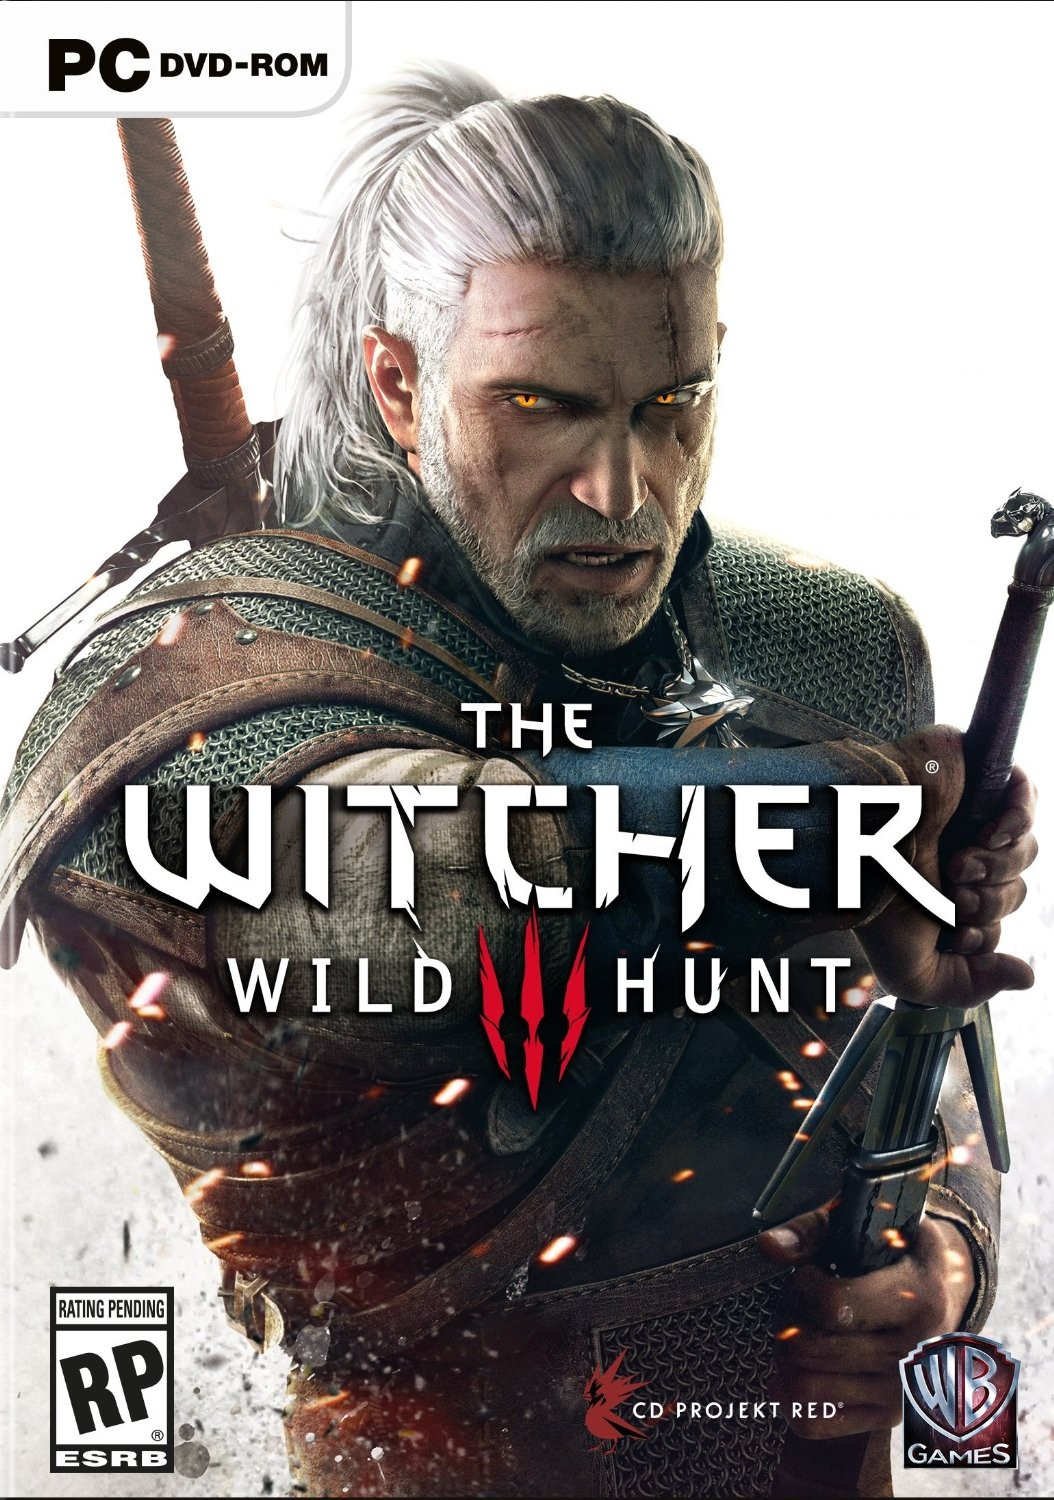 The Witcher 3: Wild Hunt 巫师3 狂猎